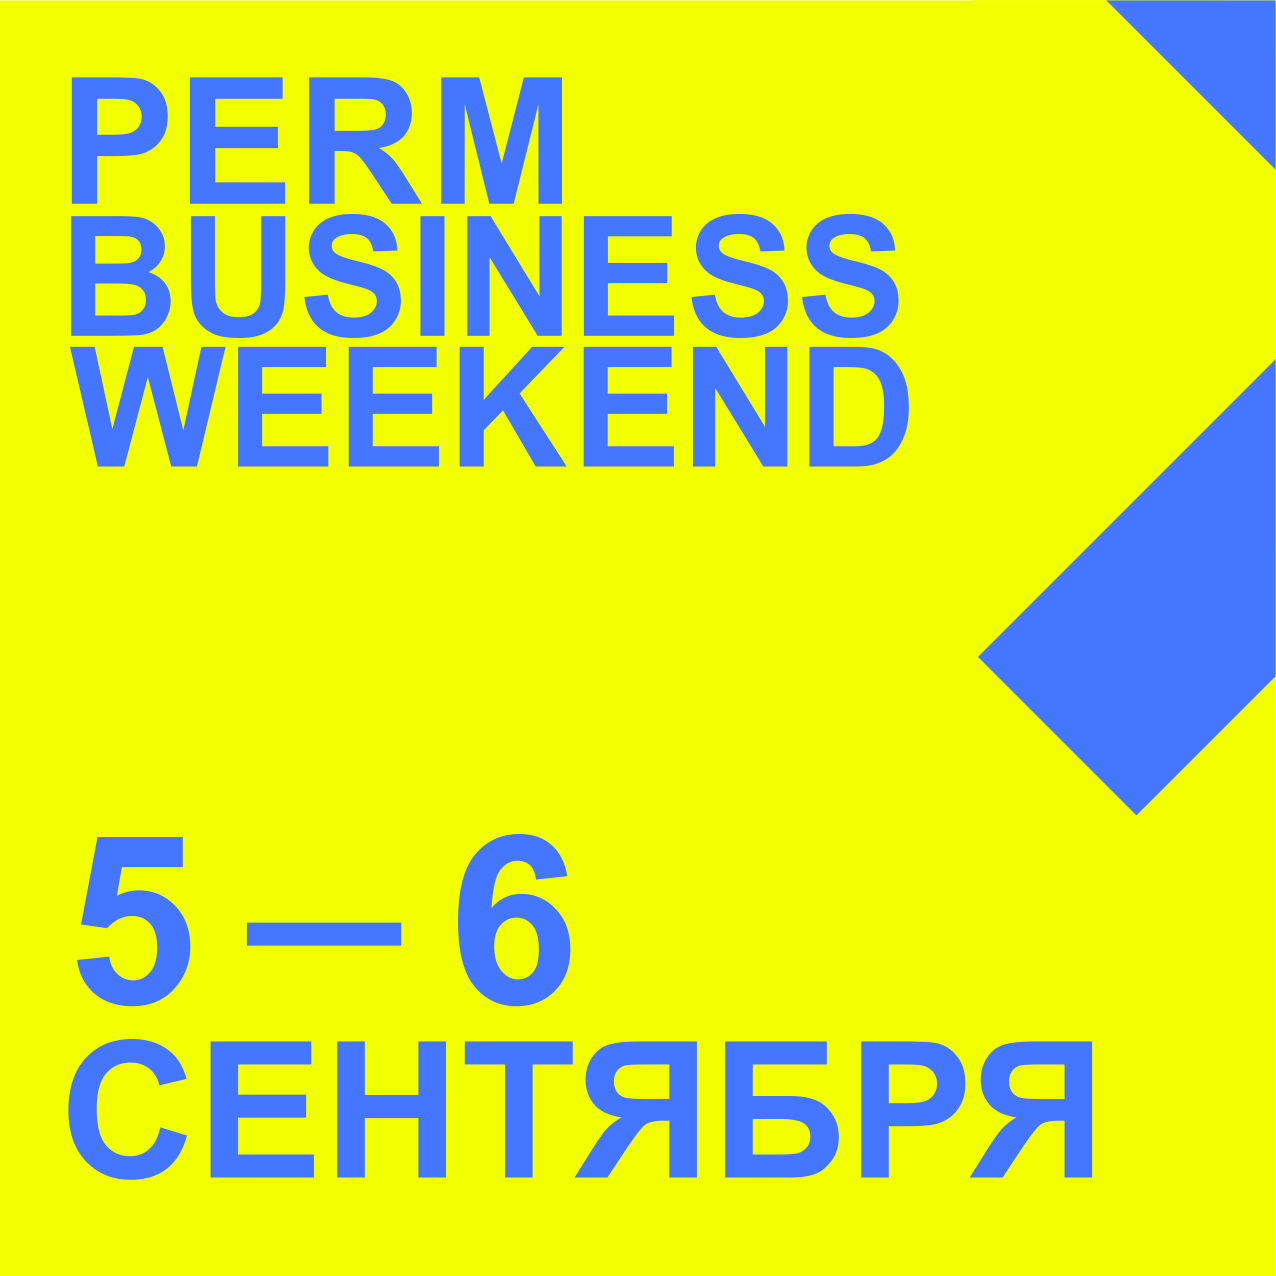 PERM BUSINESS WEEKEND